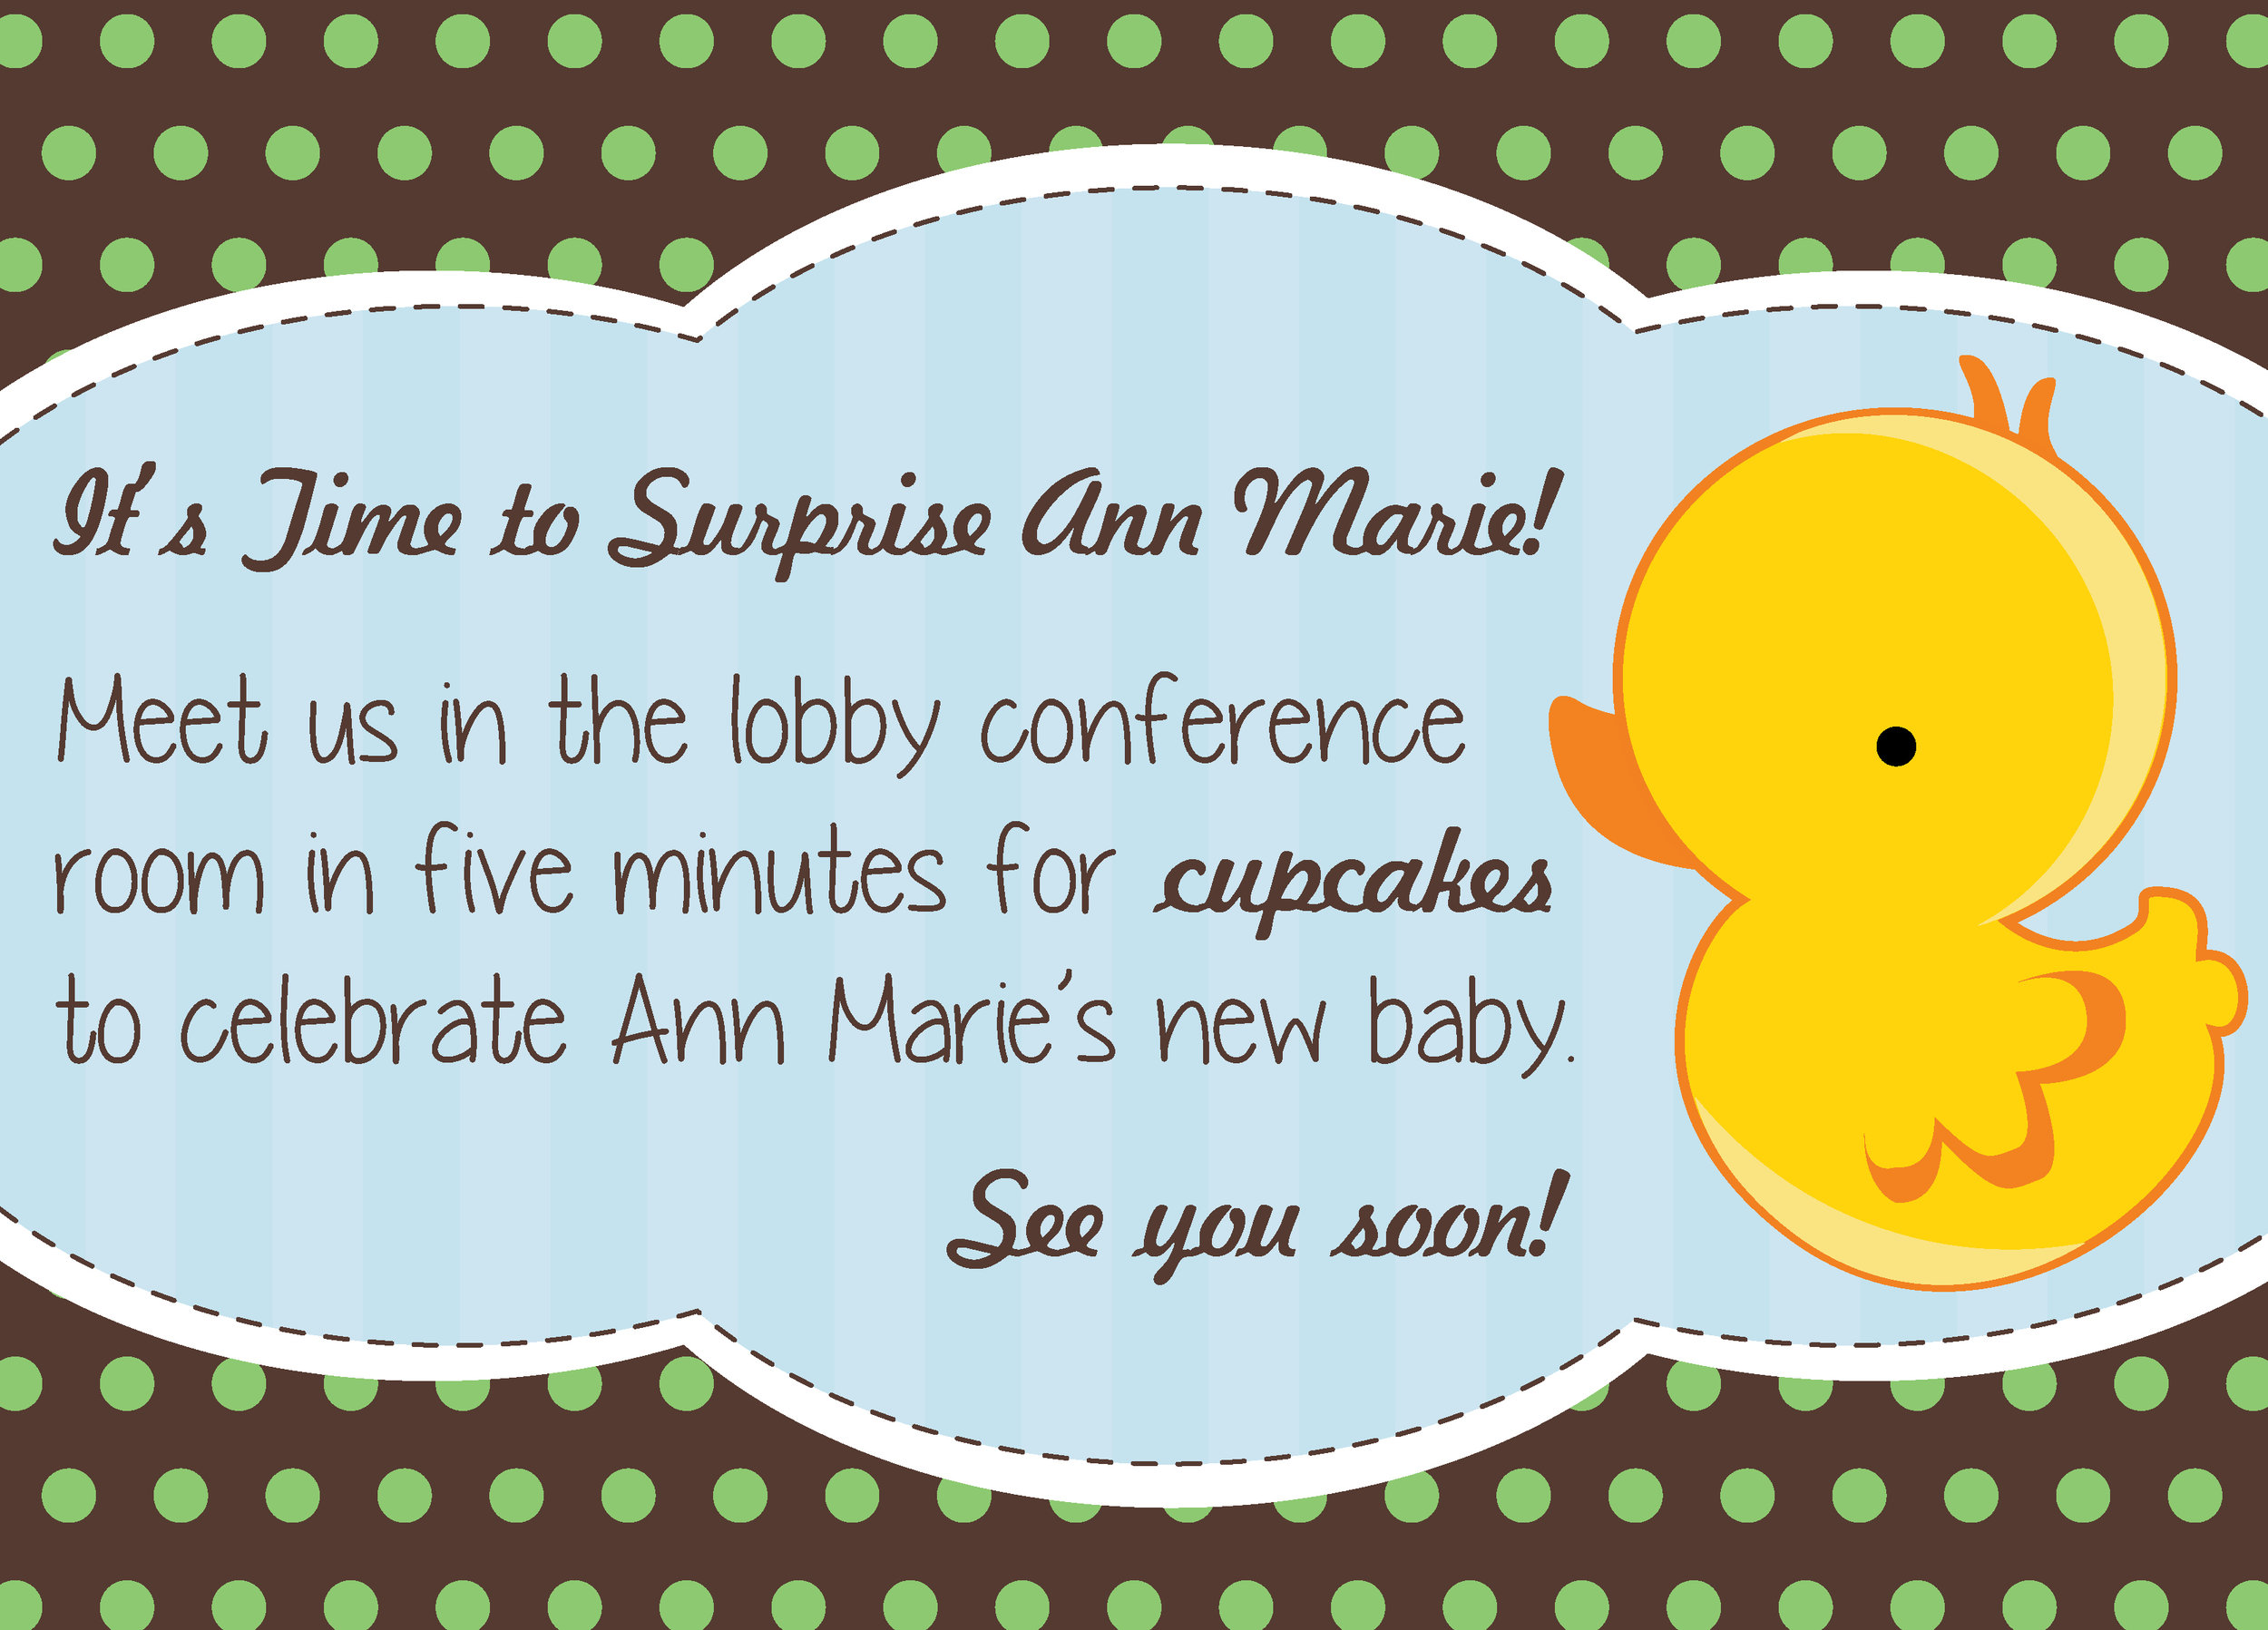 Email for Surprise Party